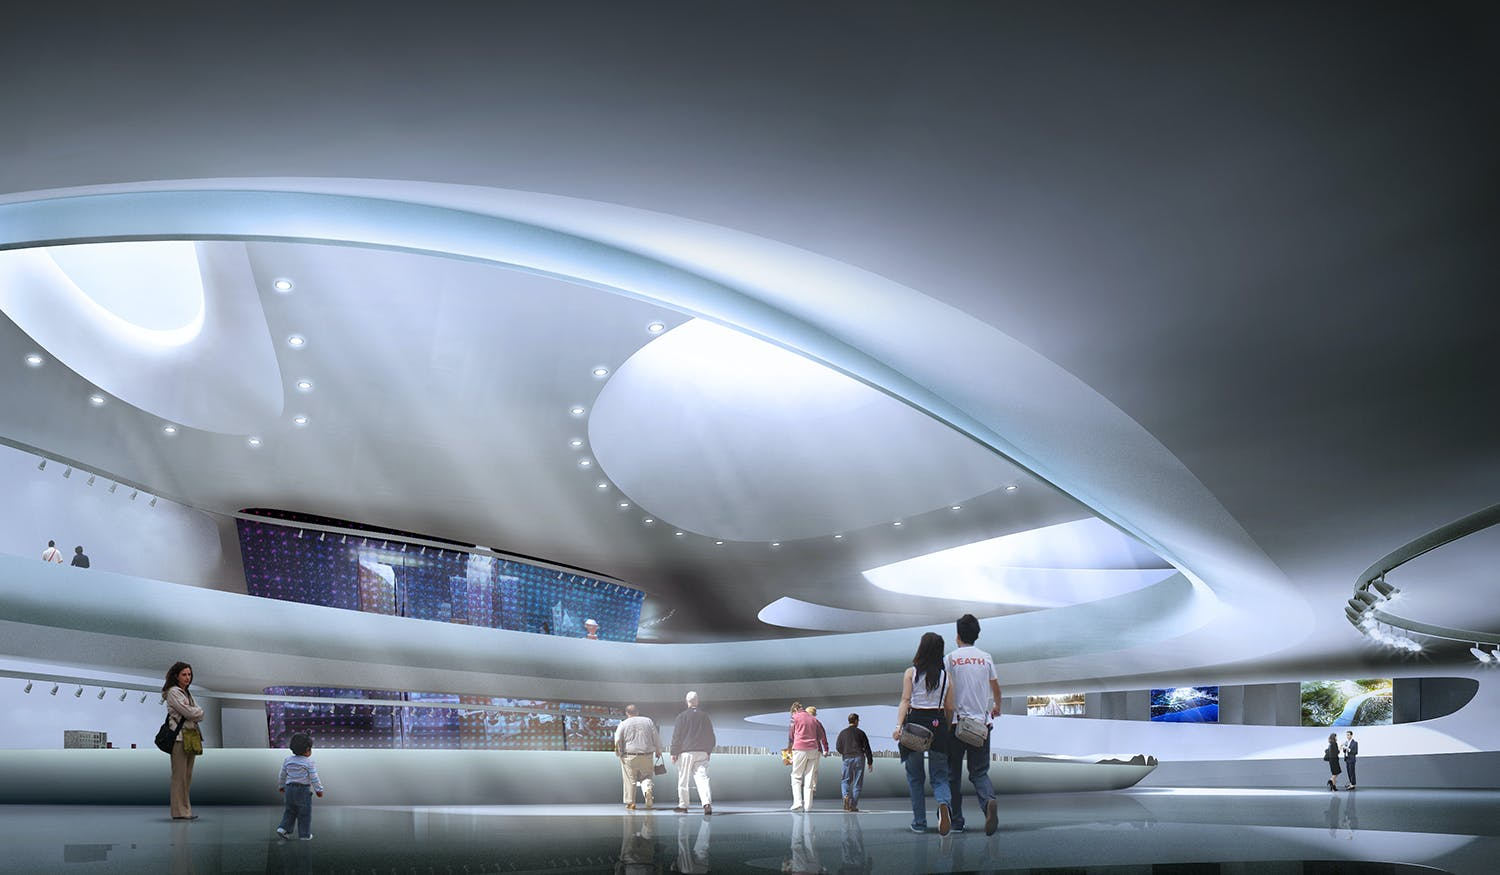 Yichang New District Master Plan And Public Service Center Exhibition Planning Center Museum